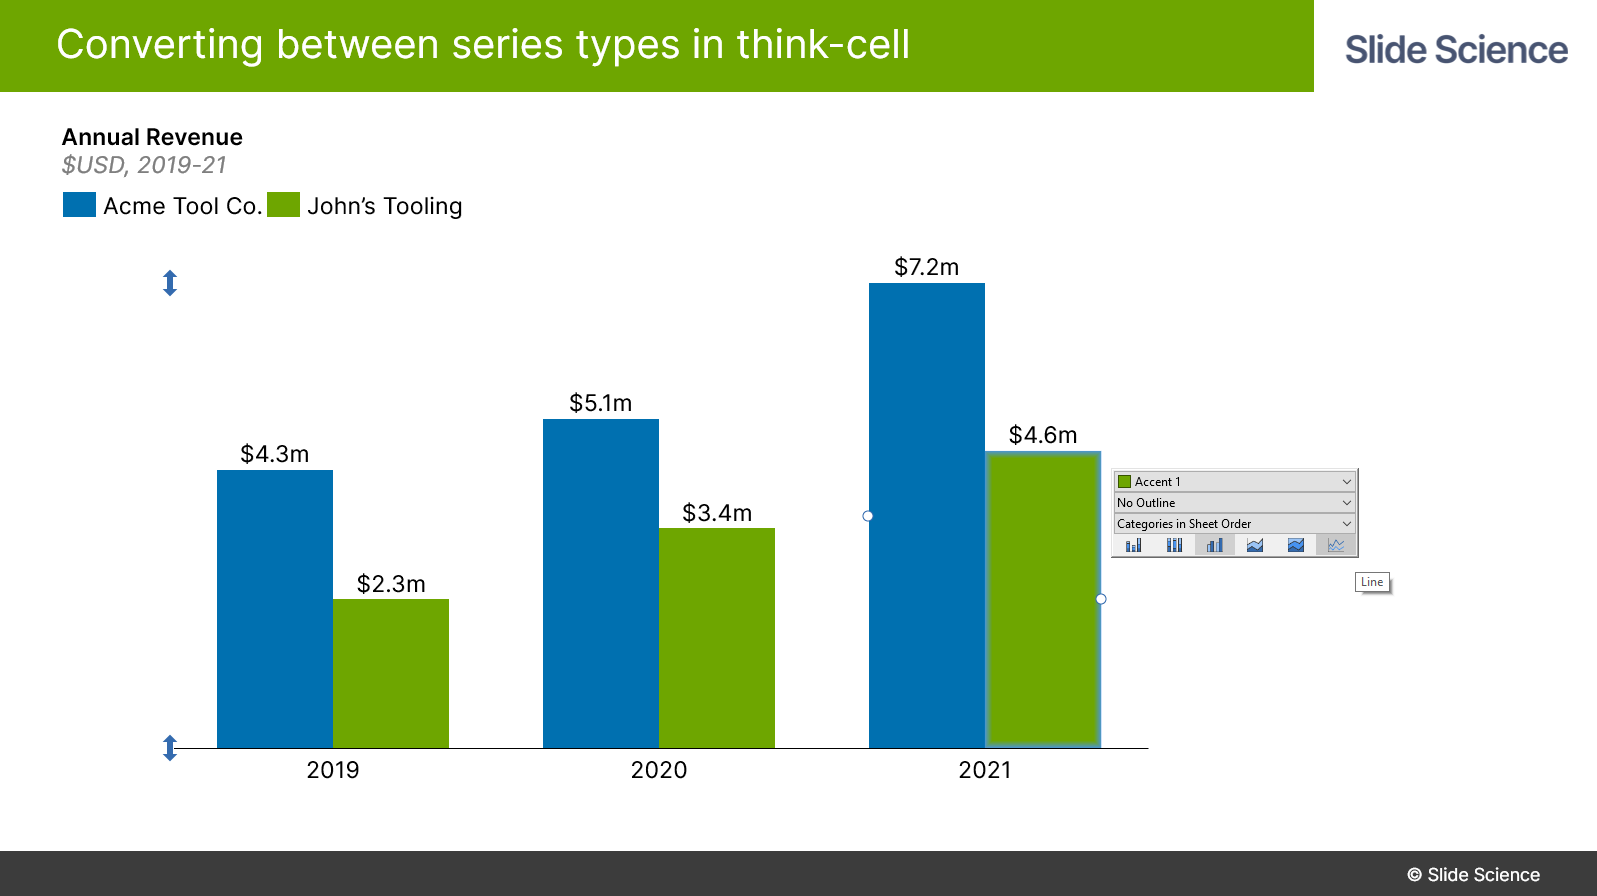 Changing series types in think-cell